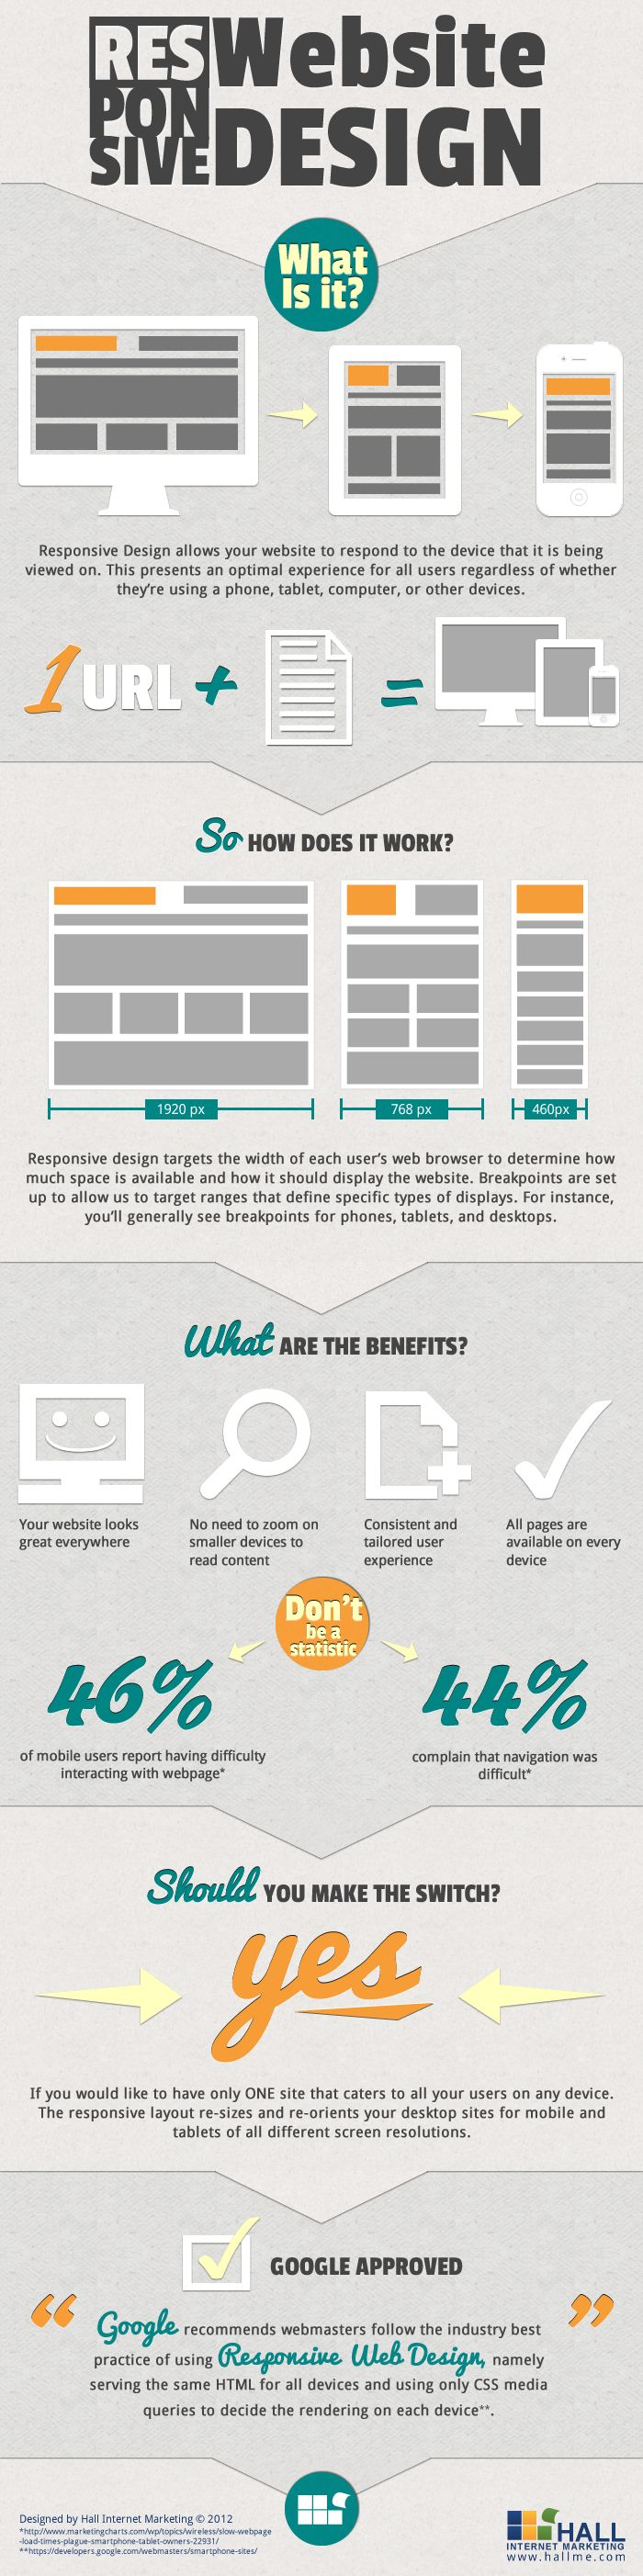 Responsive Website Design - What is it?